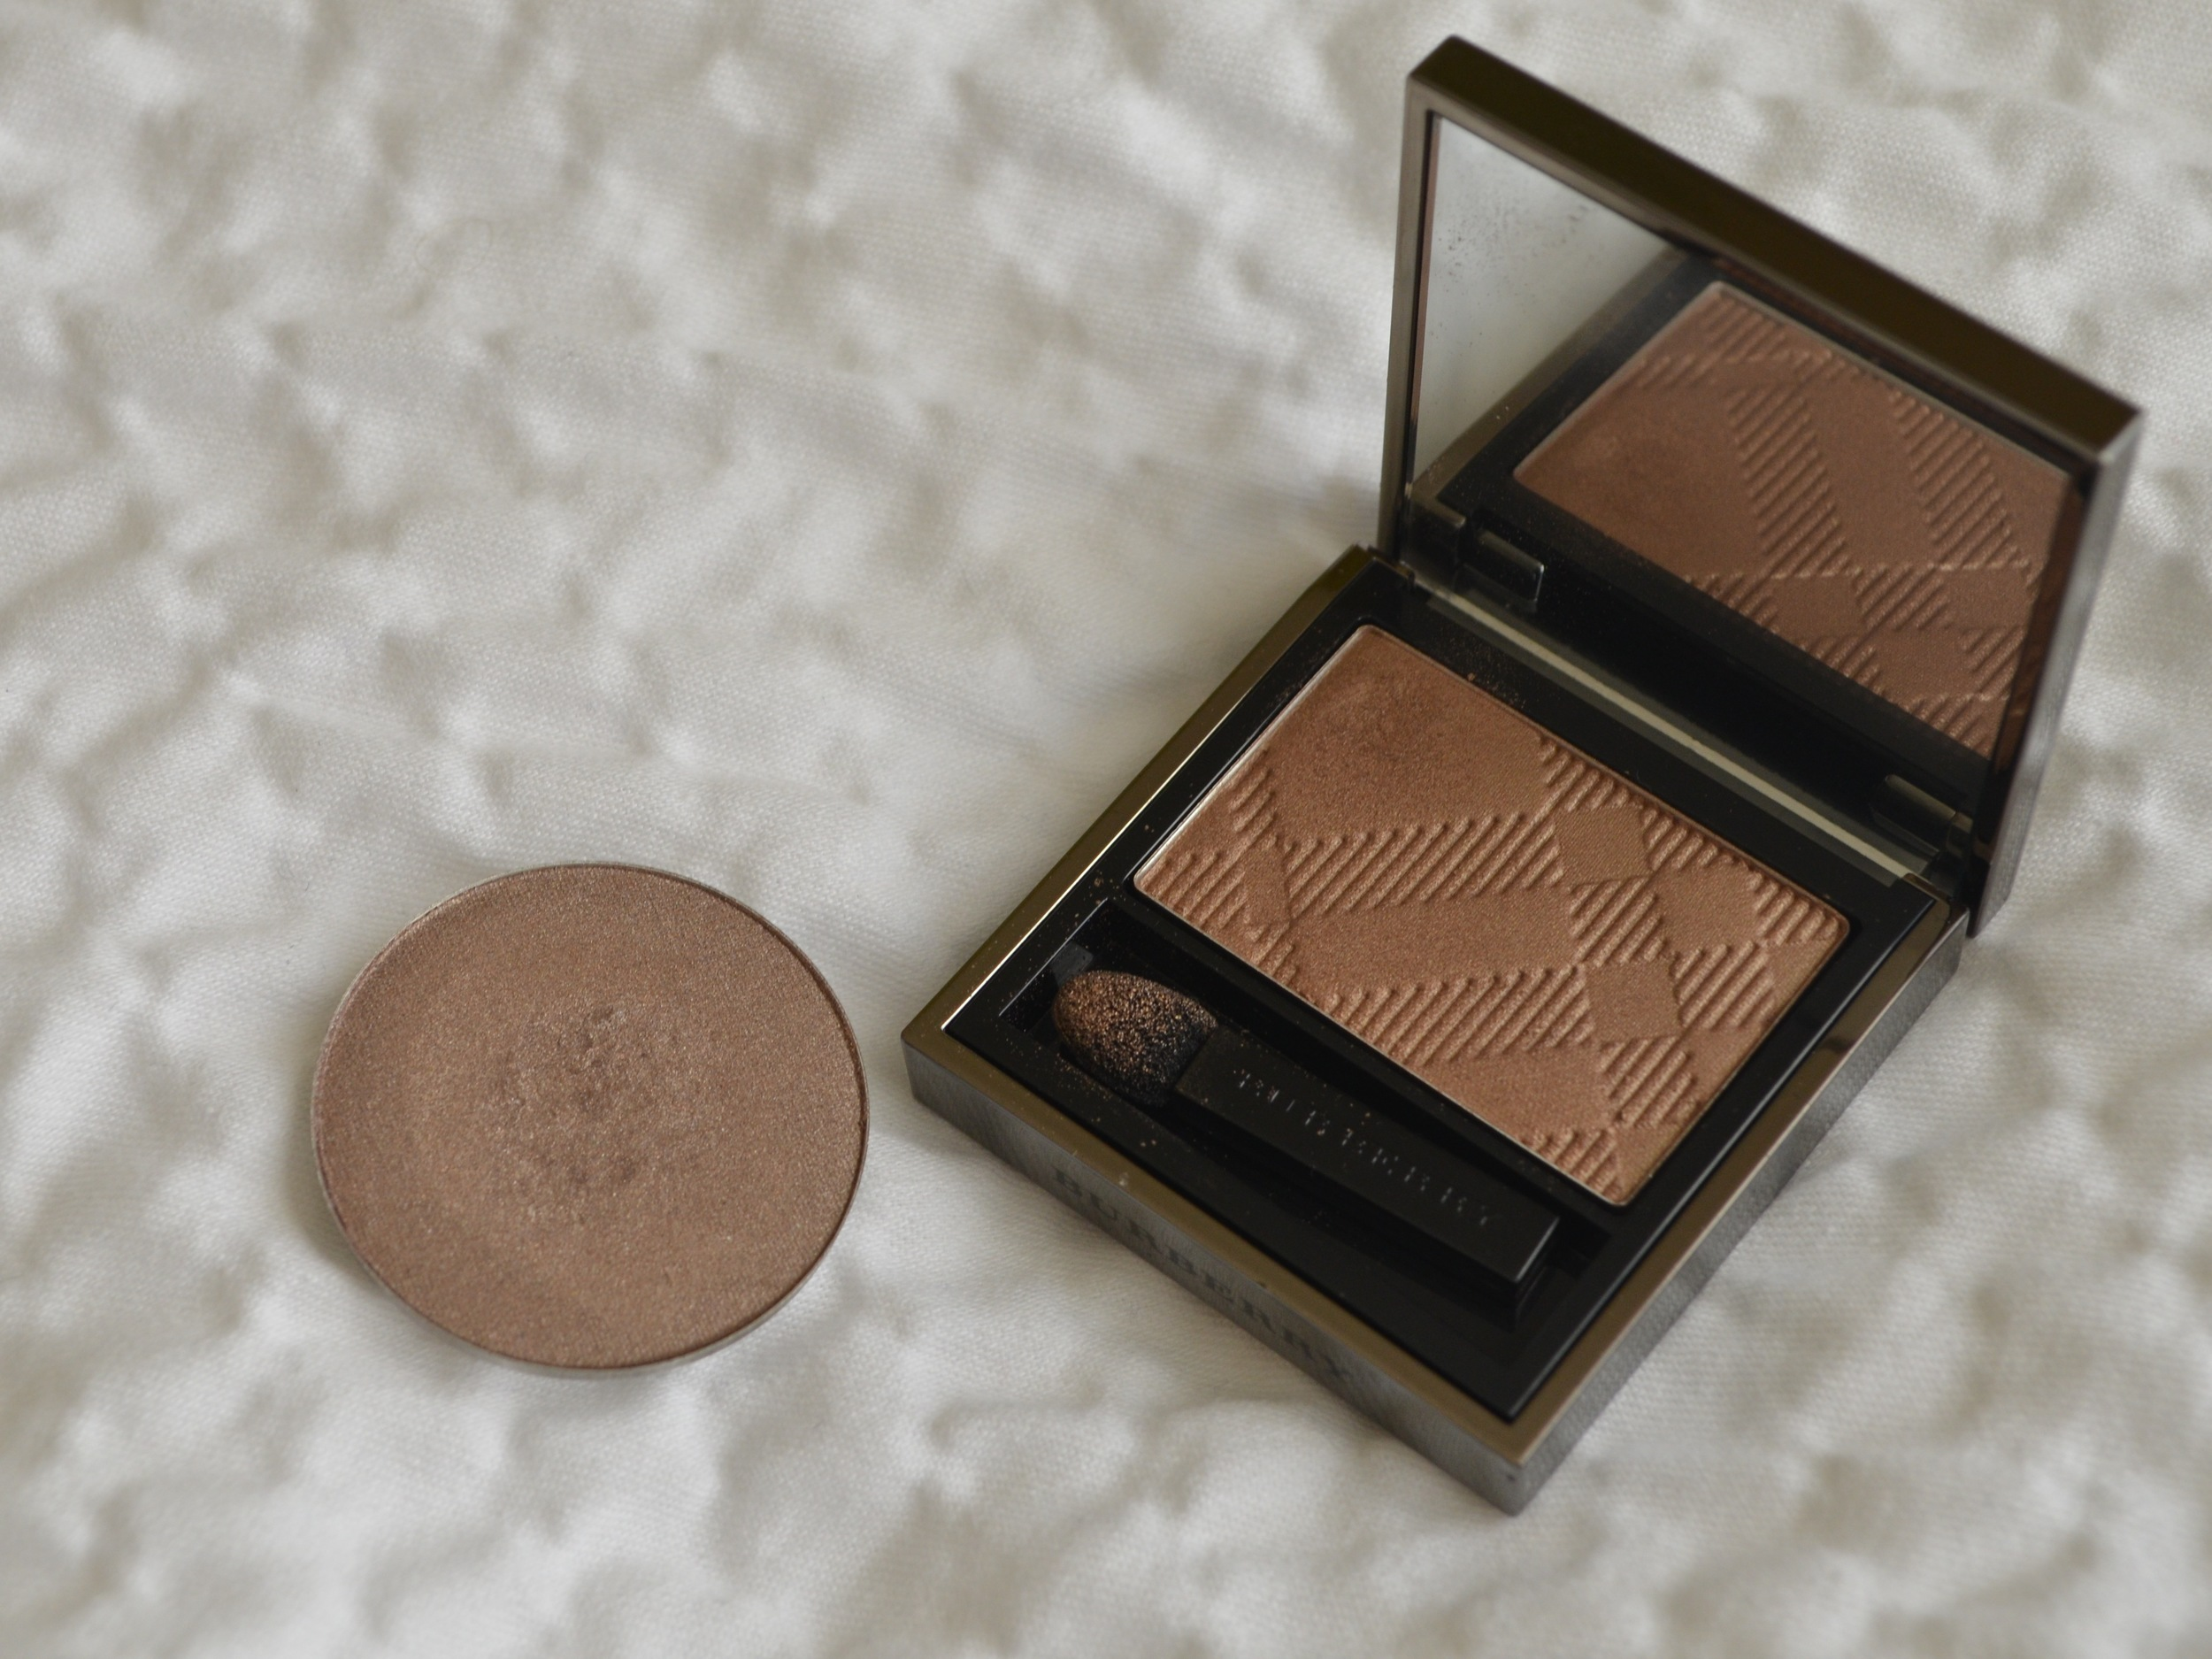 chantecaille sel eyeshadow review, burberry pale barley dupe